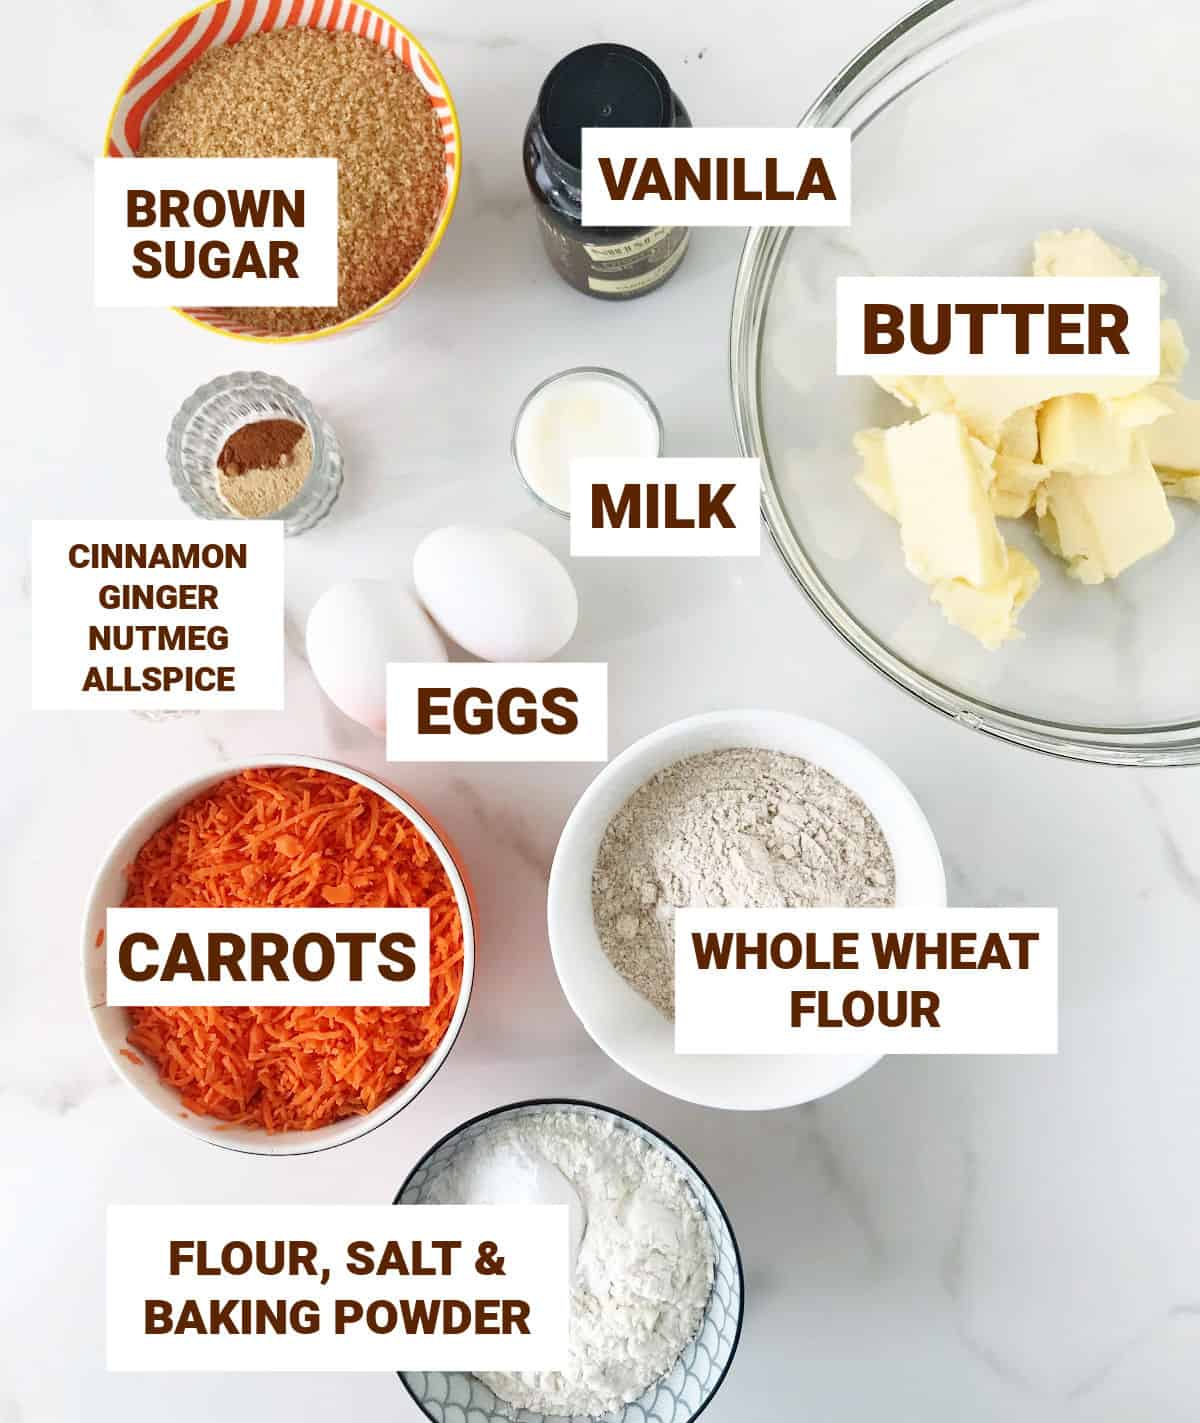 Carrot cake ingredients in small bowls on white surface, including brown sugar, vanilla, grated carrots and spices